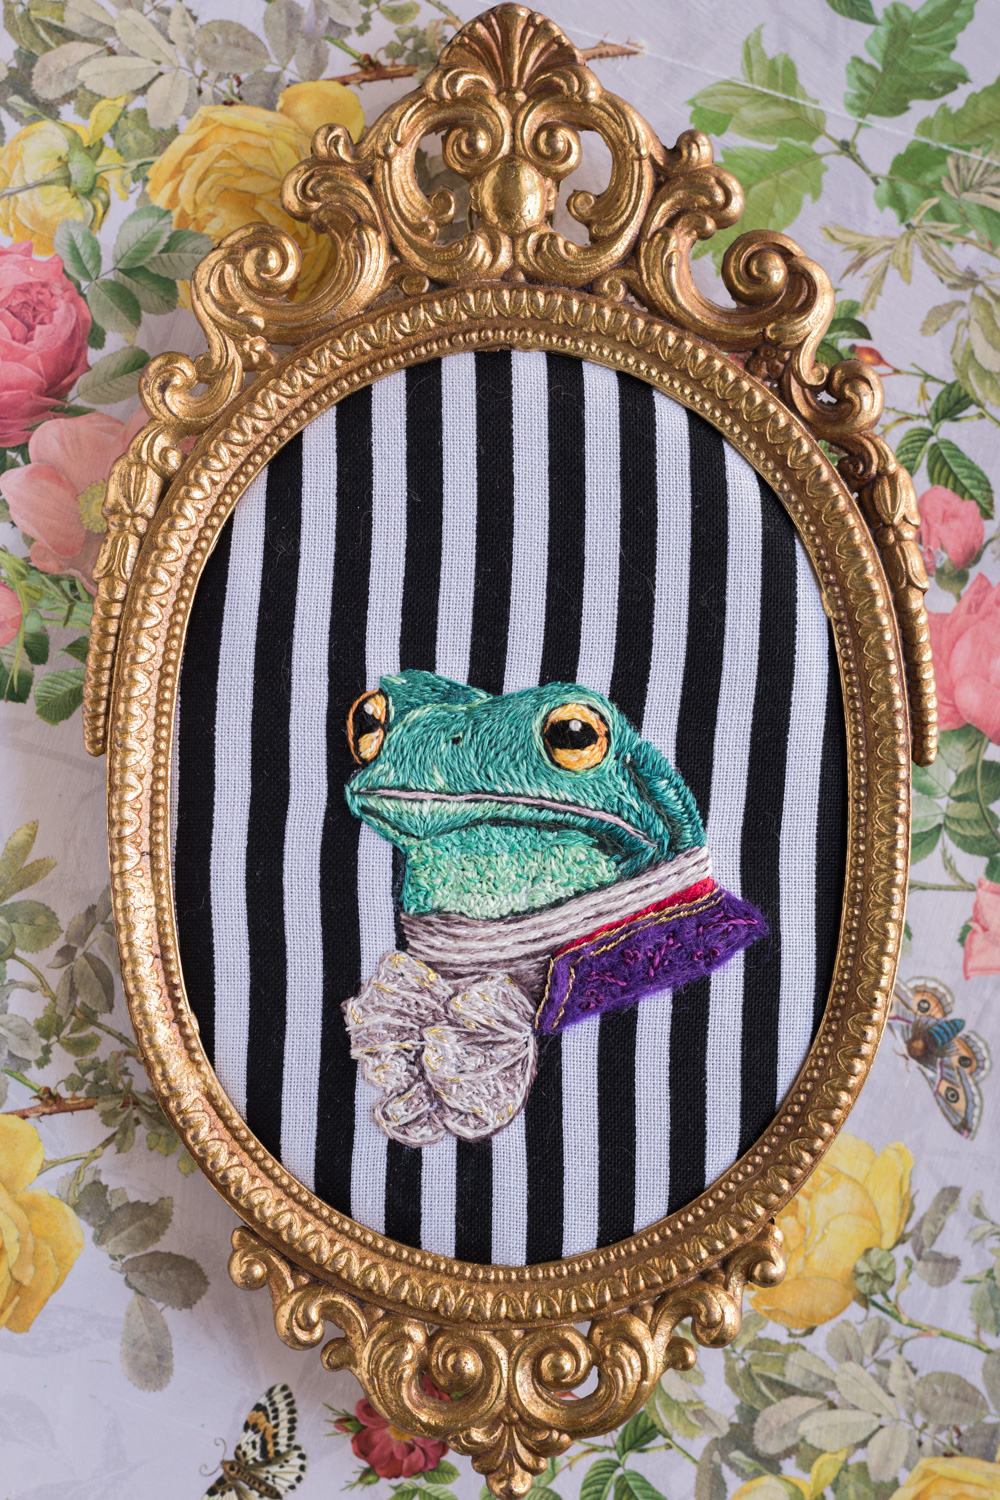 Embroidered Frog in Victorian clothing